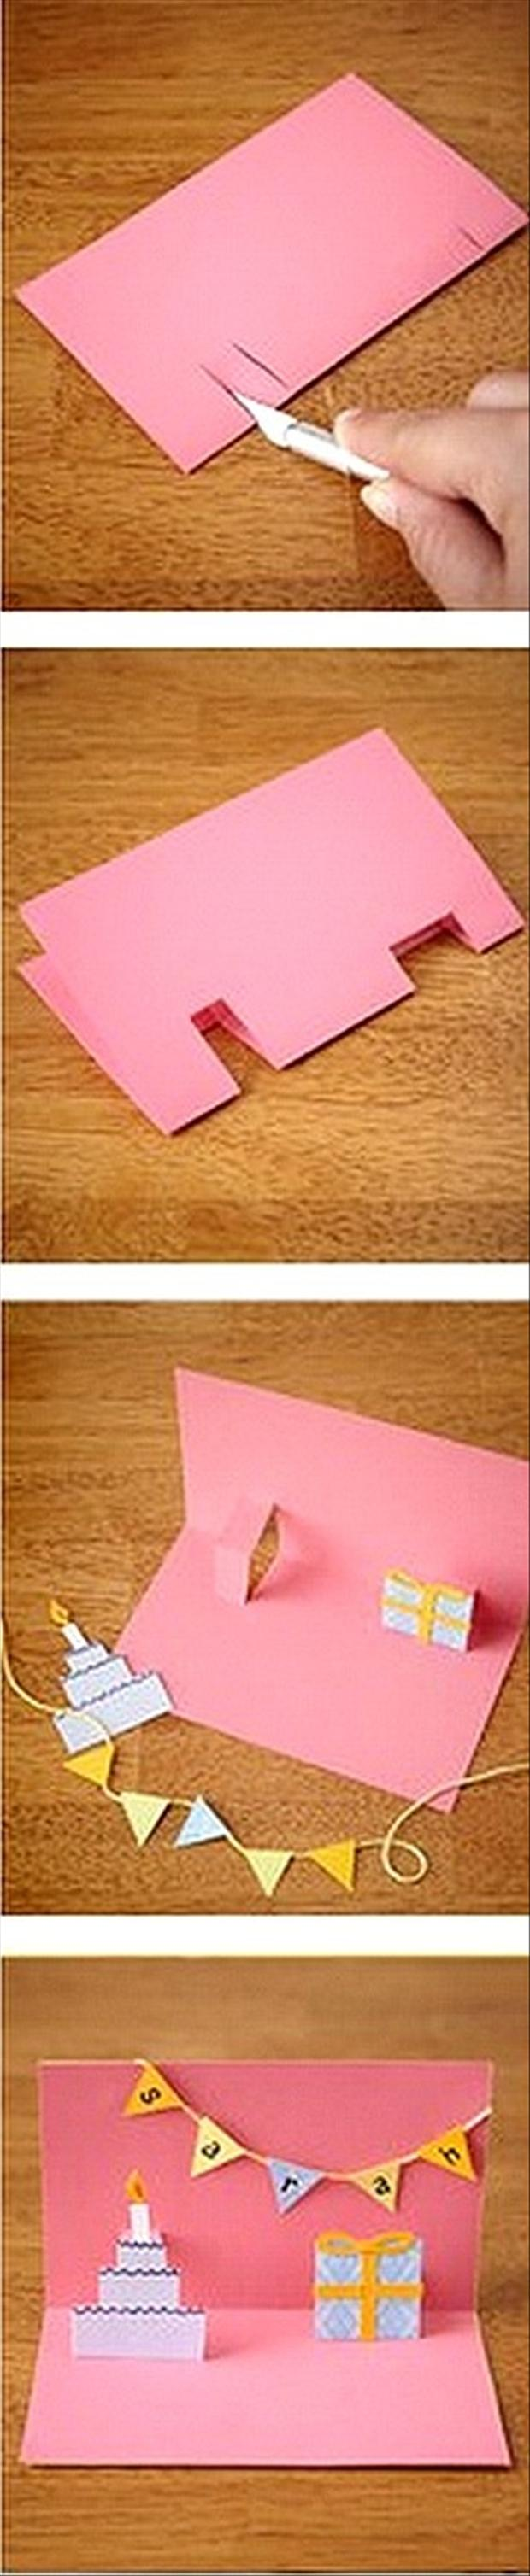 make a pop out birthday card, fun crafts